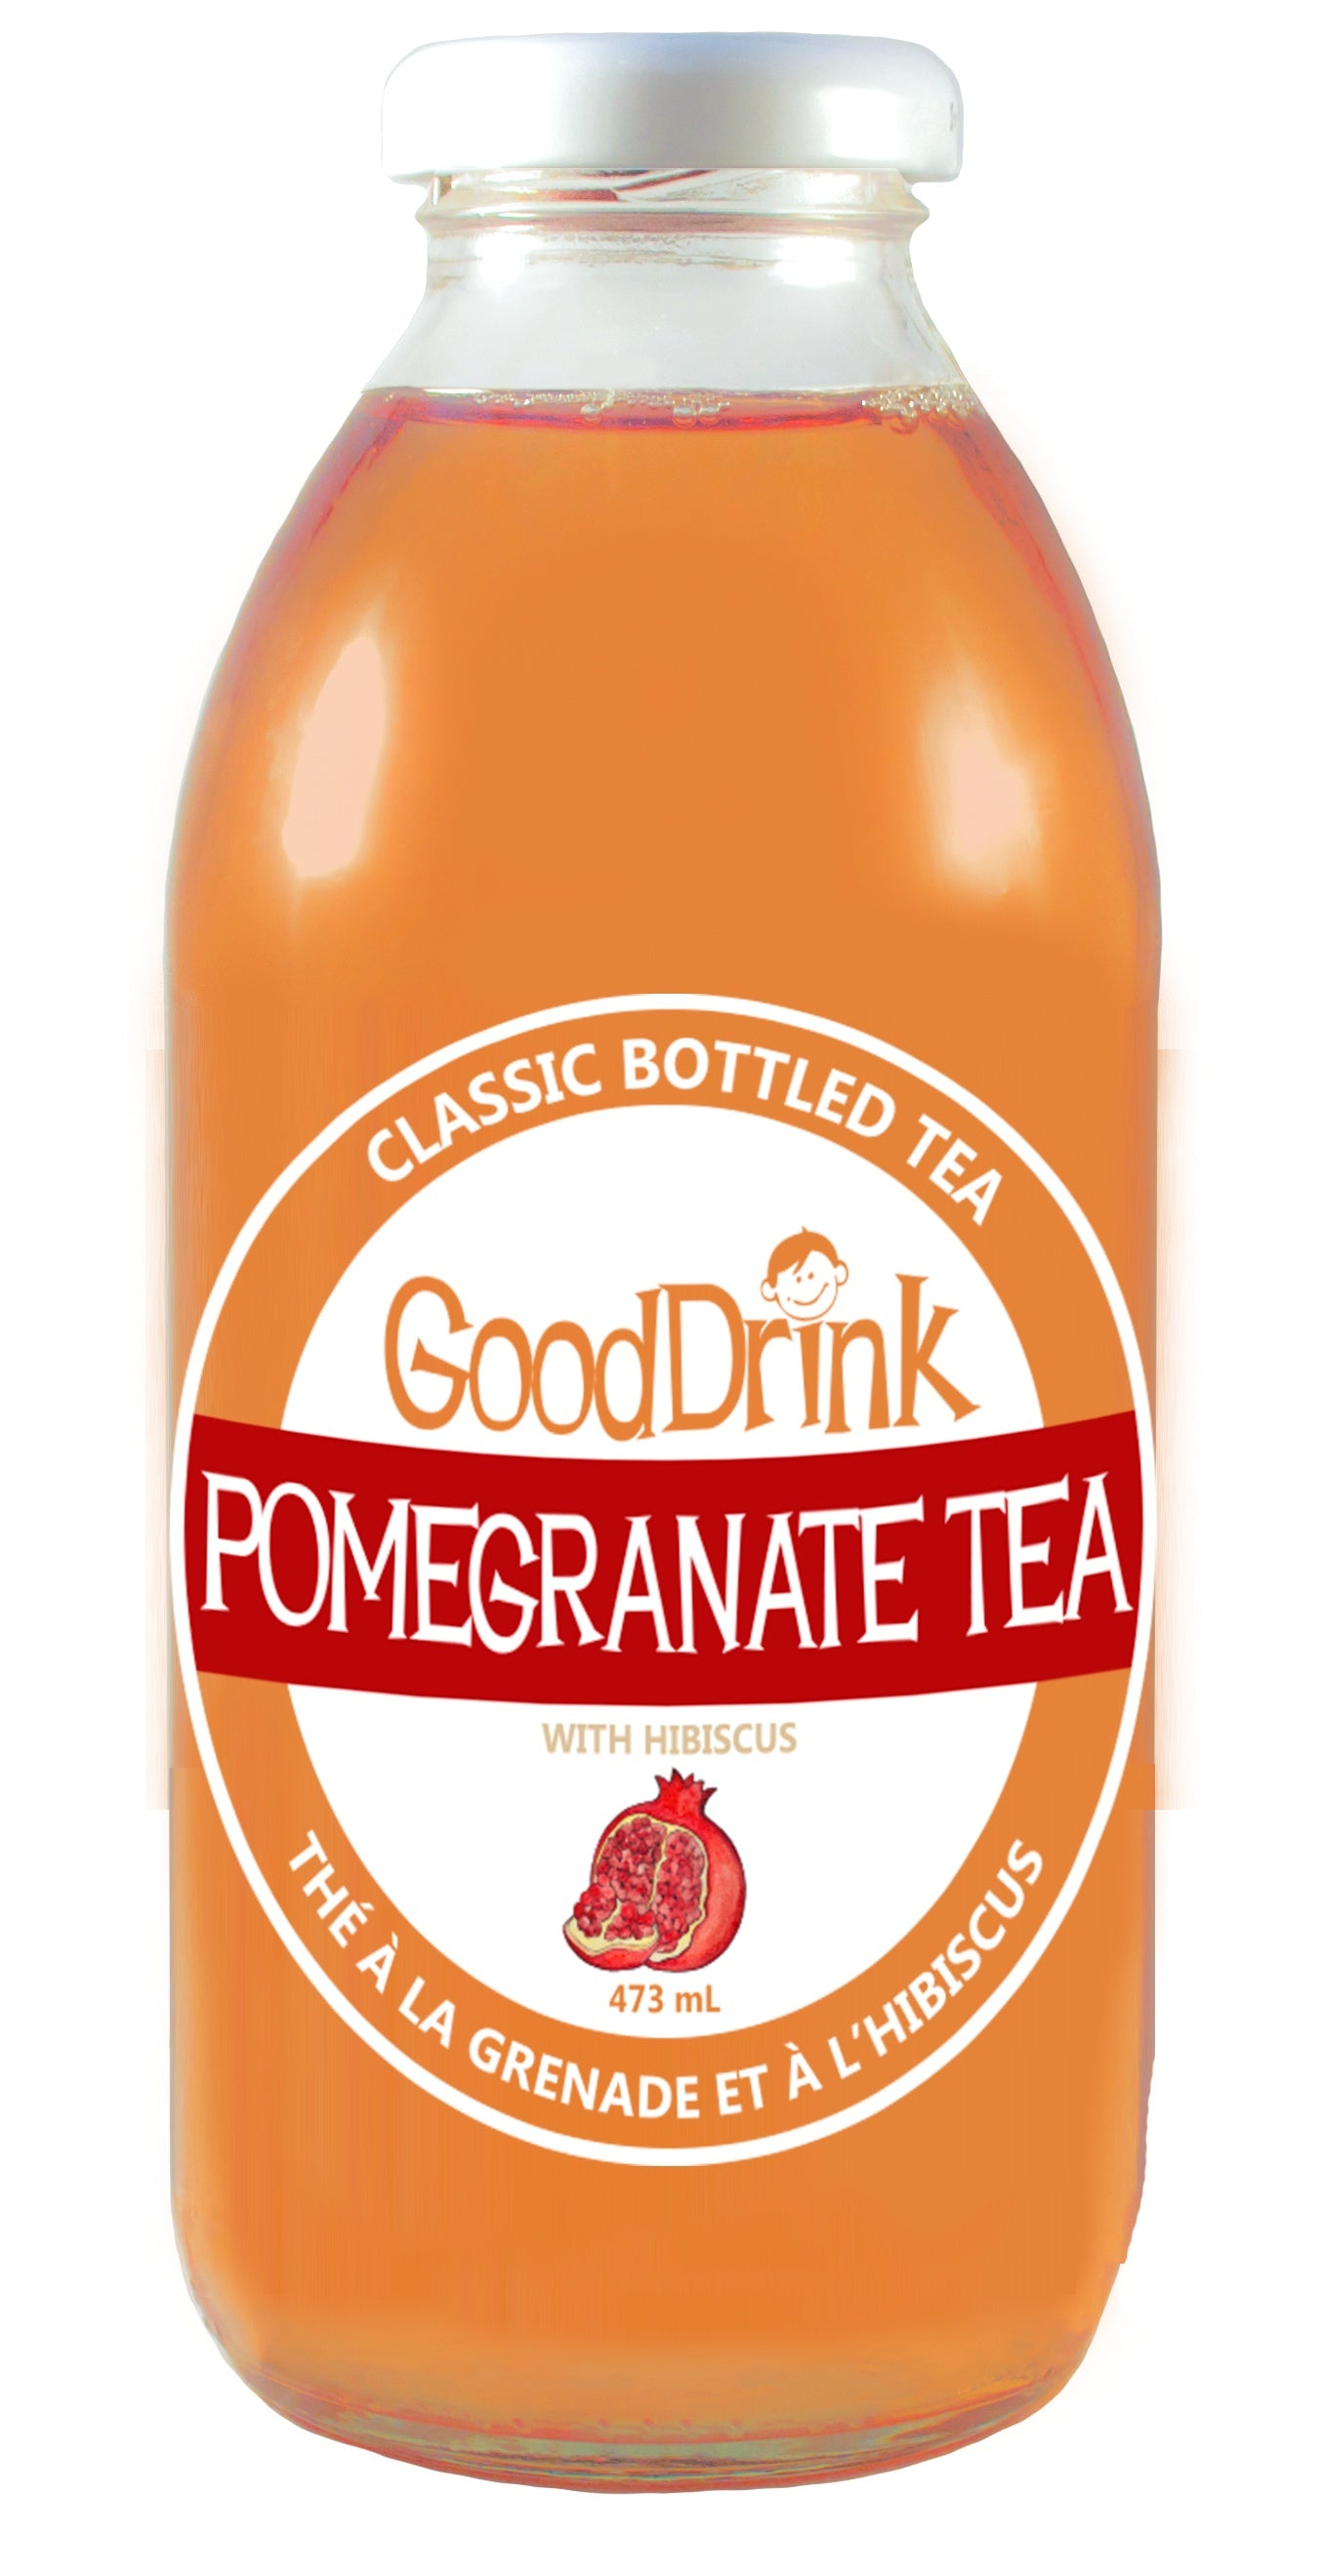 Food & Drink - Good Drink - Pomegranate Tea, 478 Ml